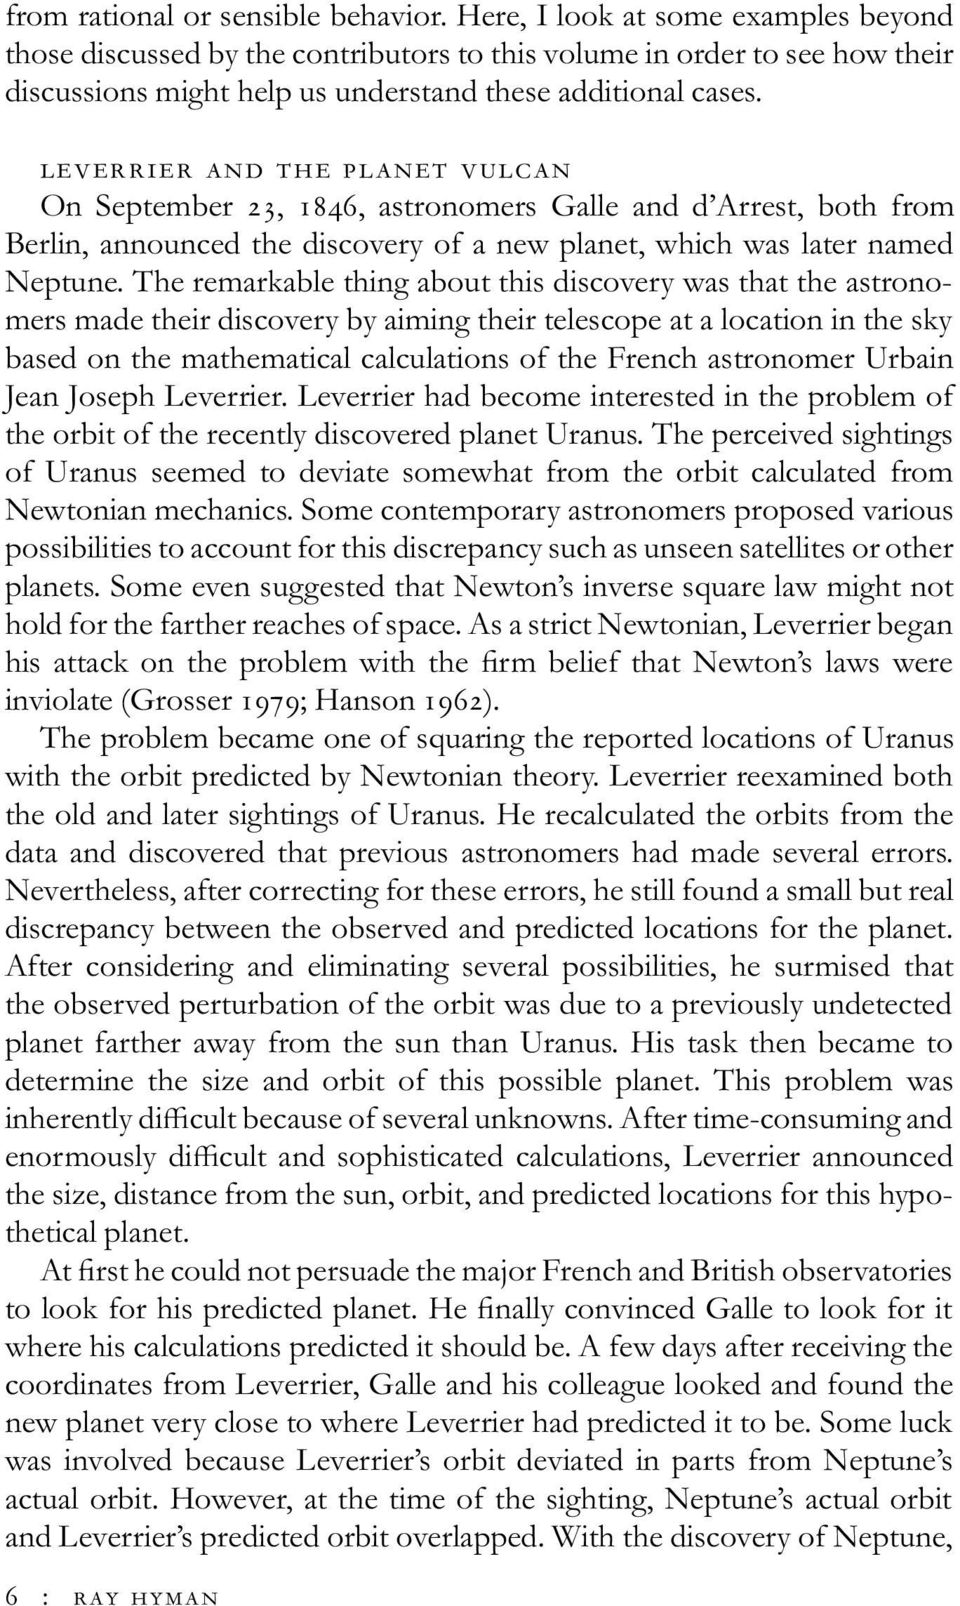 leverrier and the planet vulcan On September 23, 1846, astronomers Galle and d Arrest, both from Berlin, announced the discovery of a new planet, which was later named Neptune.